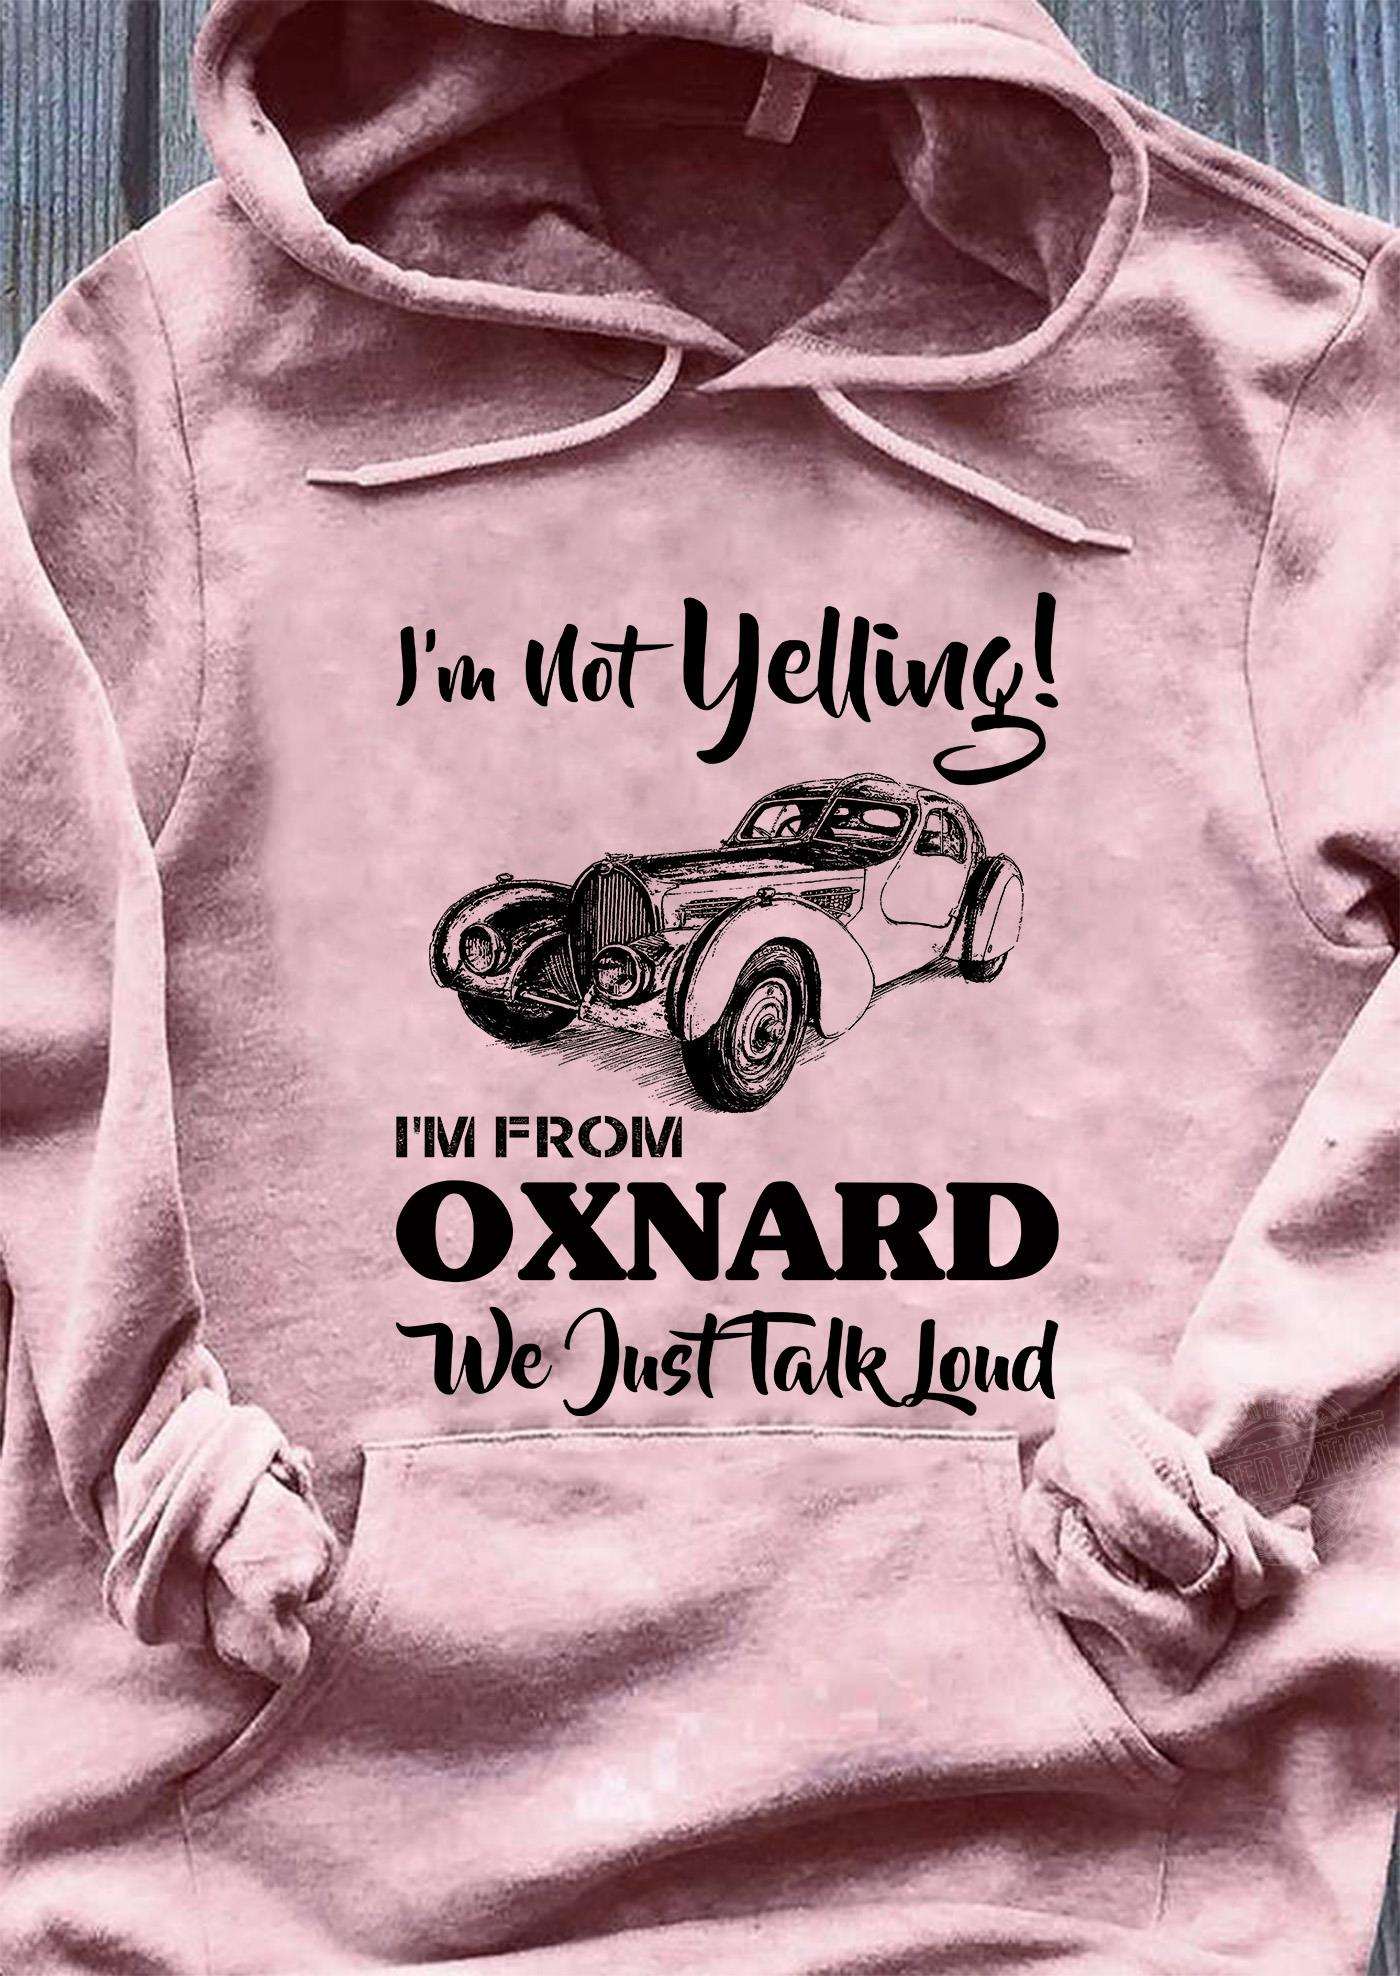 I'm not yelling I'm from oxnard we just talk loud Shirt